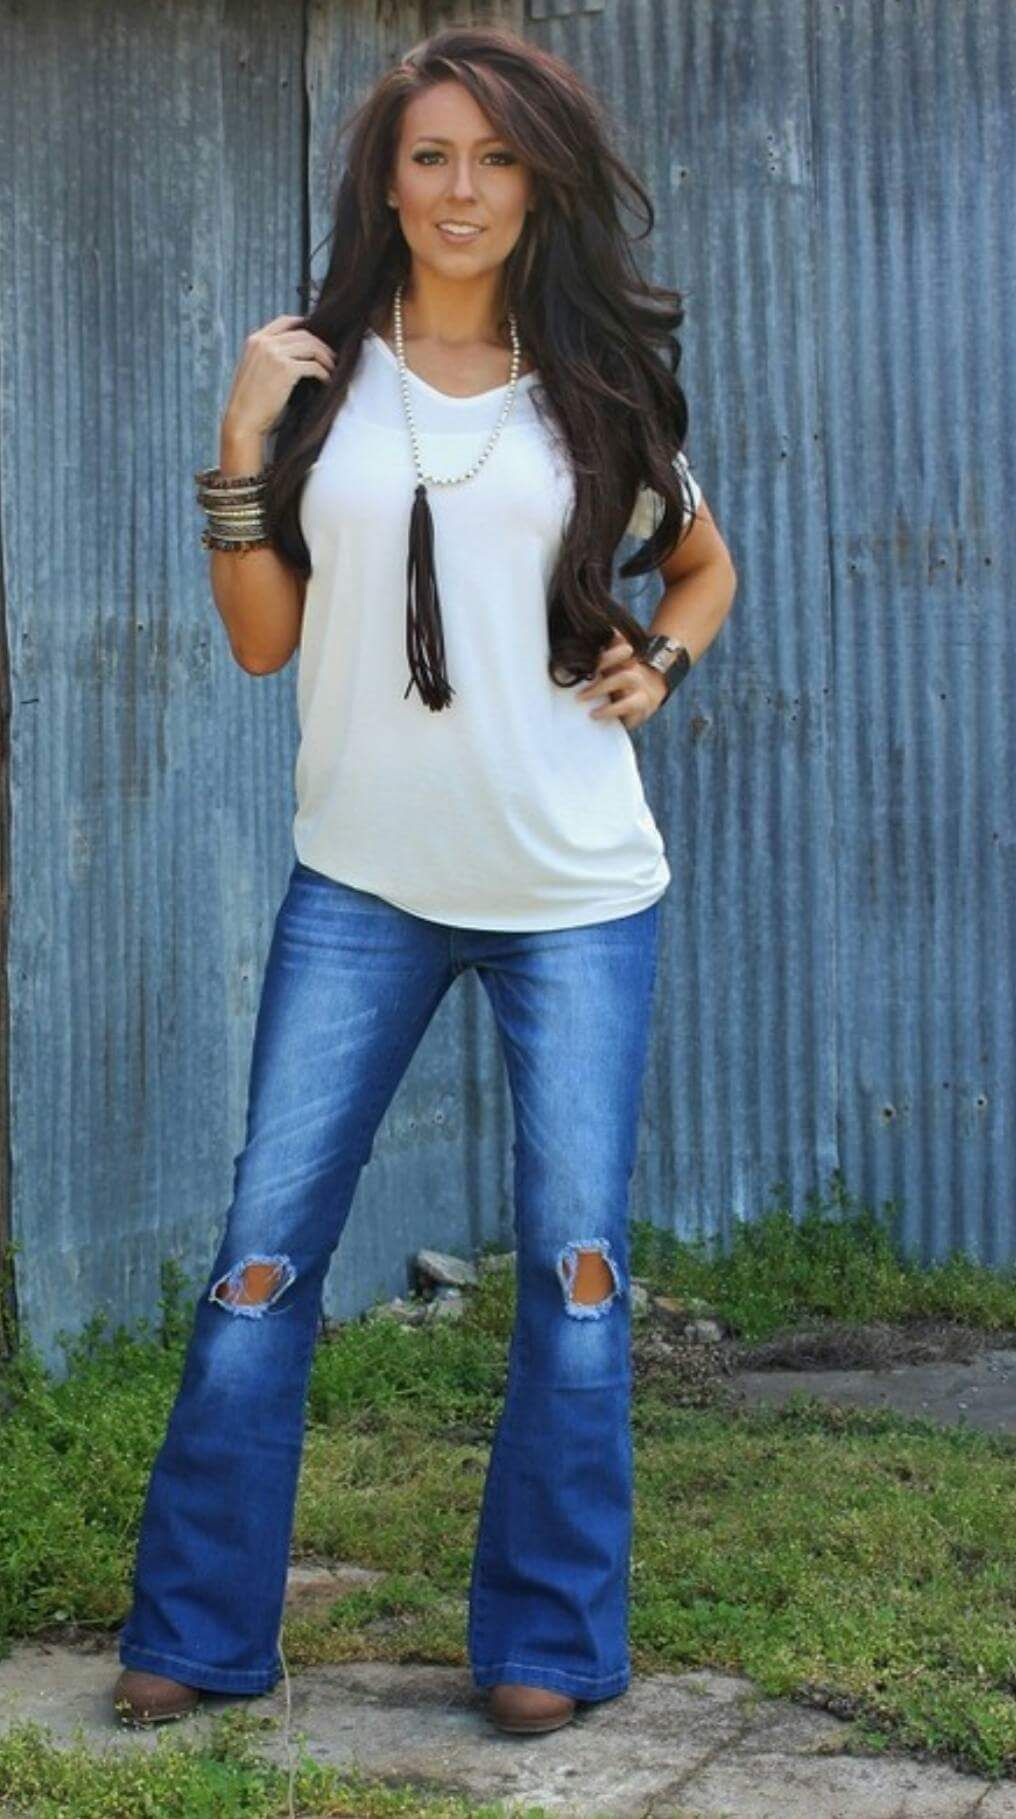 f1d1c9a711bb4 Emily Jane Distressed Jeans - Also in Plus Size